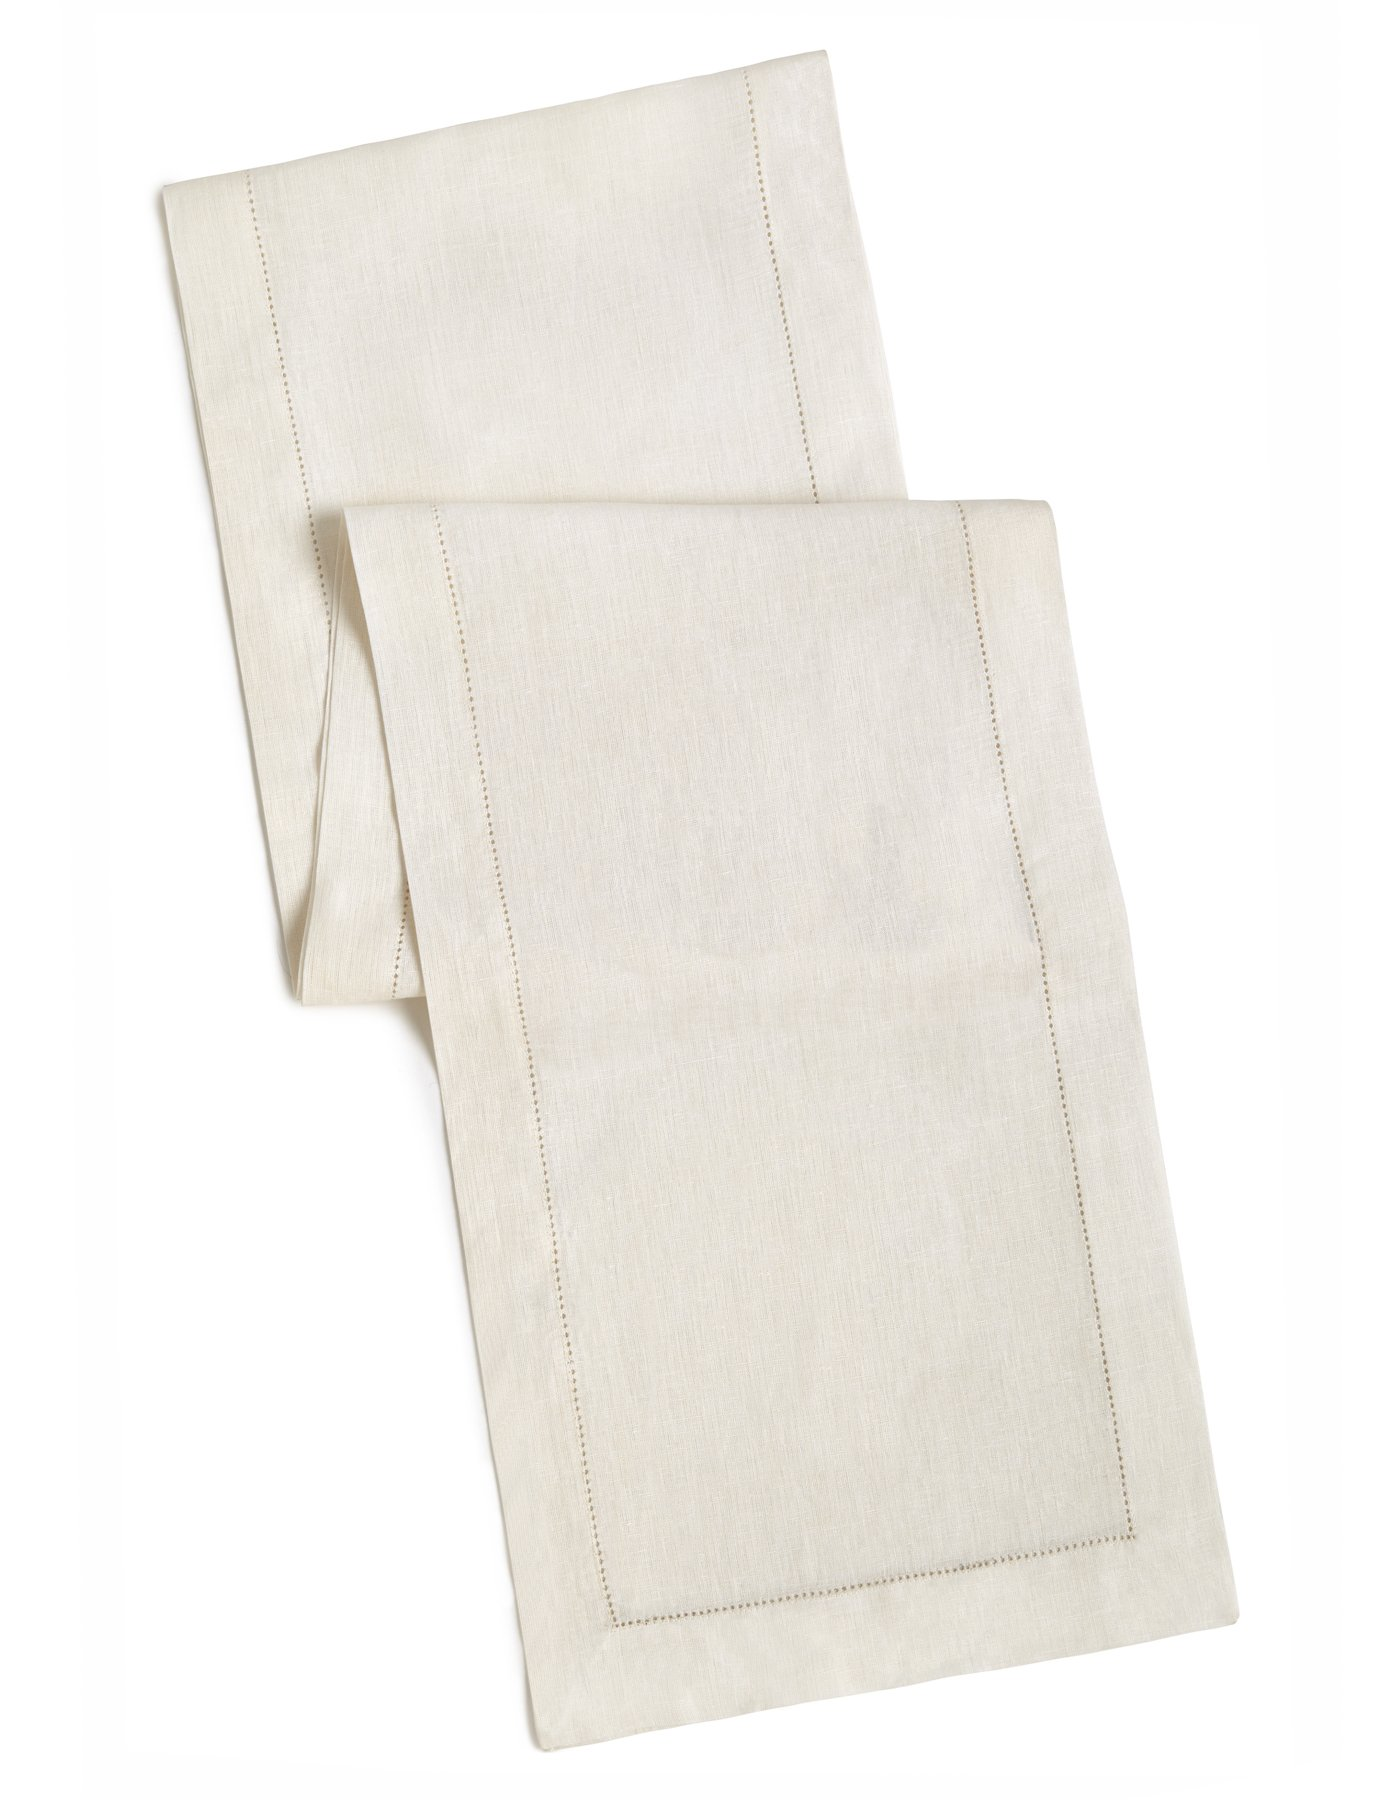 100% Linen Hemstitch Table Runner - Size 16x90 Ivory - Hand Crafted and Hand Stitched Table Runner with Hemstitch detailing. The pure Linen fabric works well in both casual and formal settings